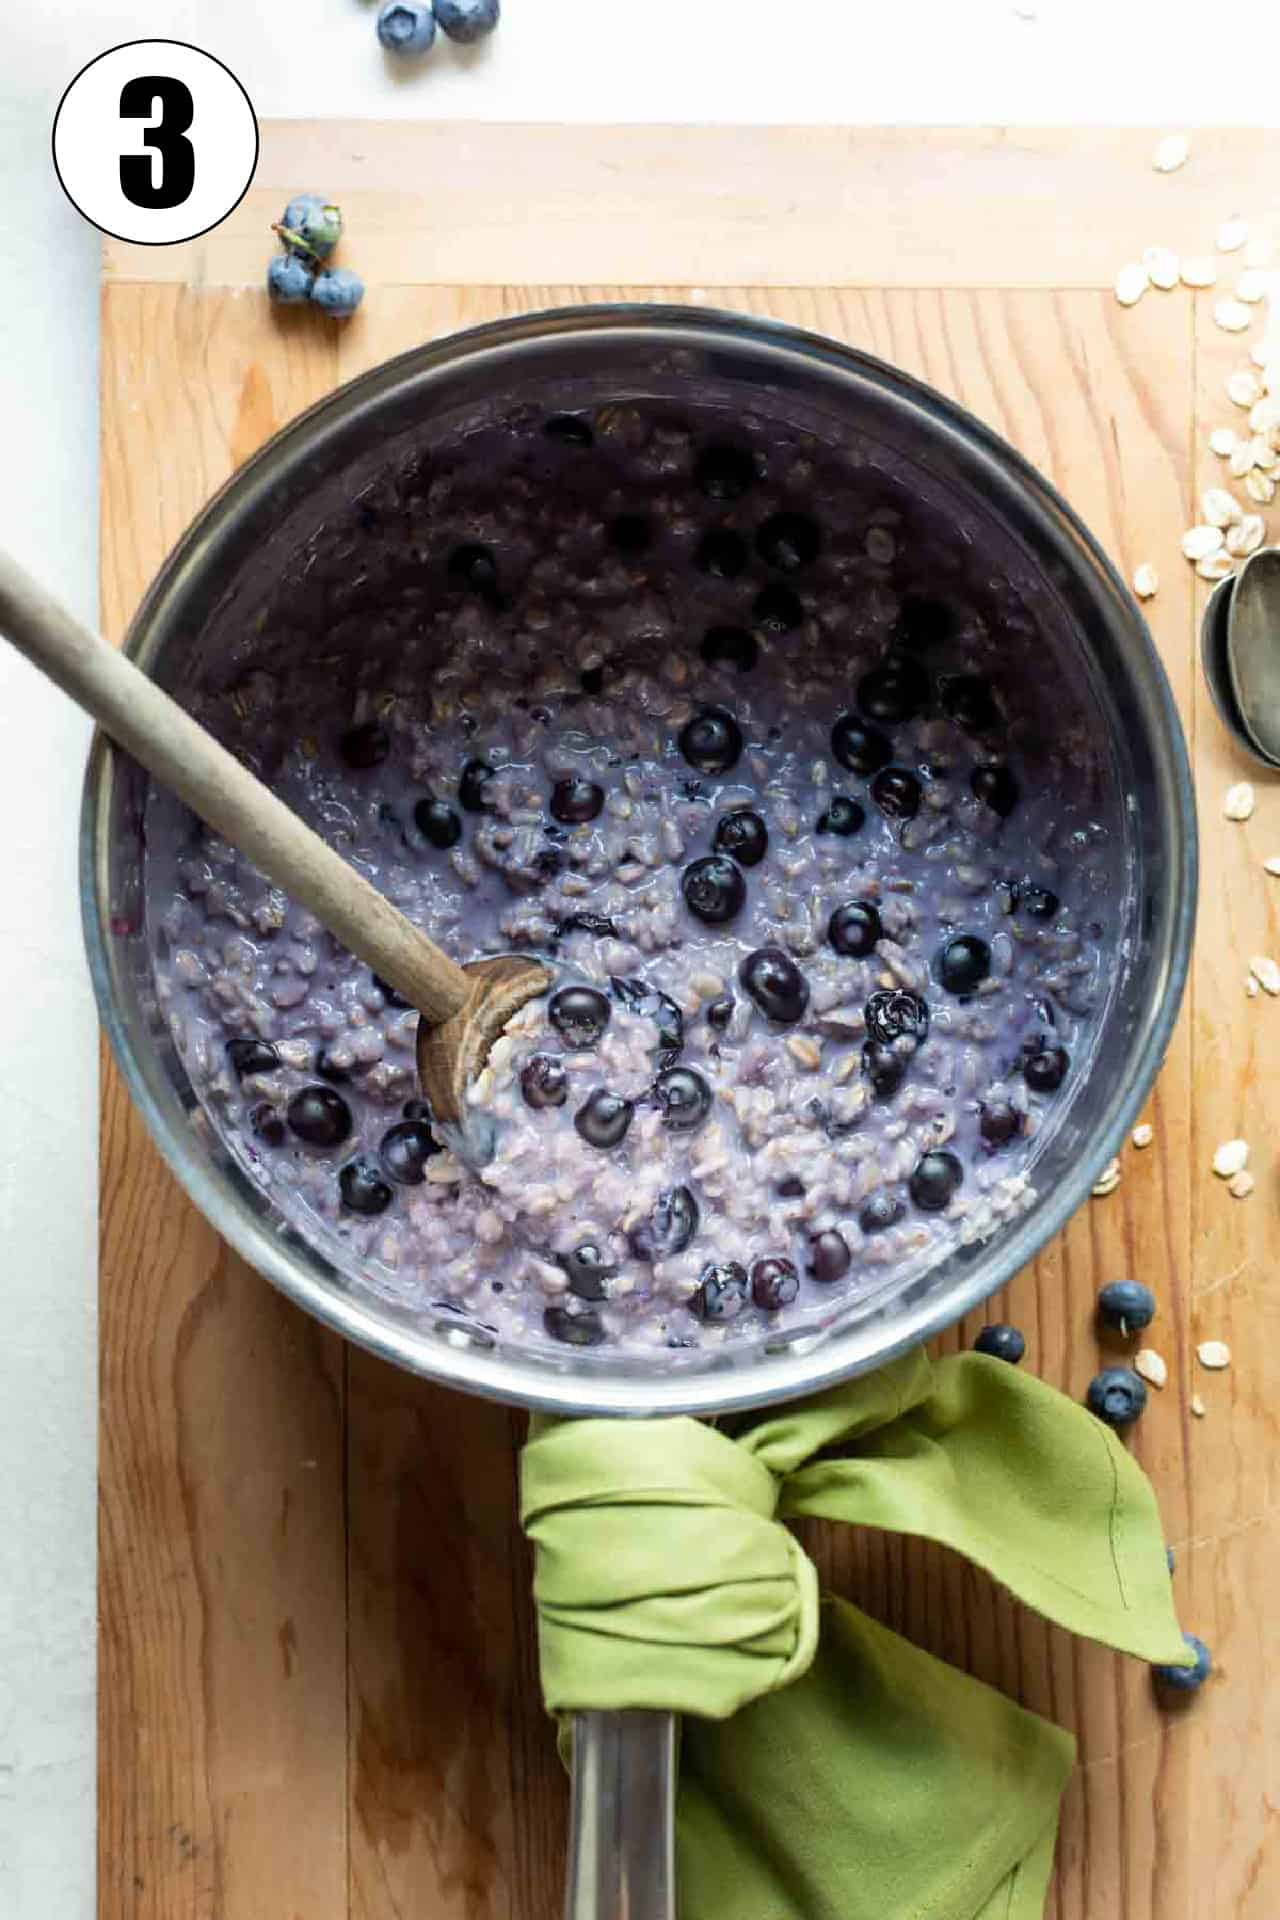 Saucepan filled with cooked, purple colored oatmeal with fresh blueberries.